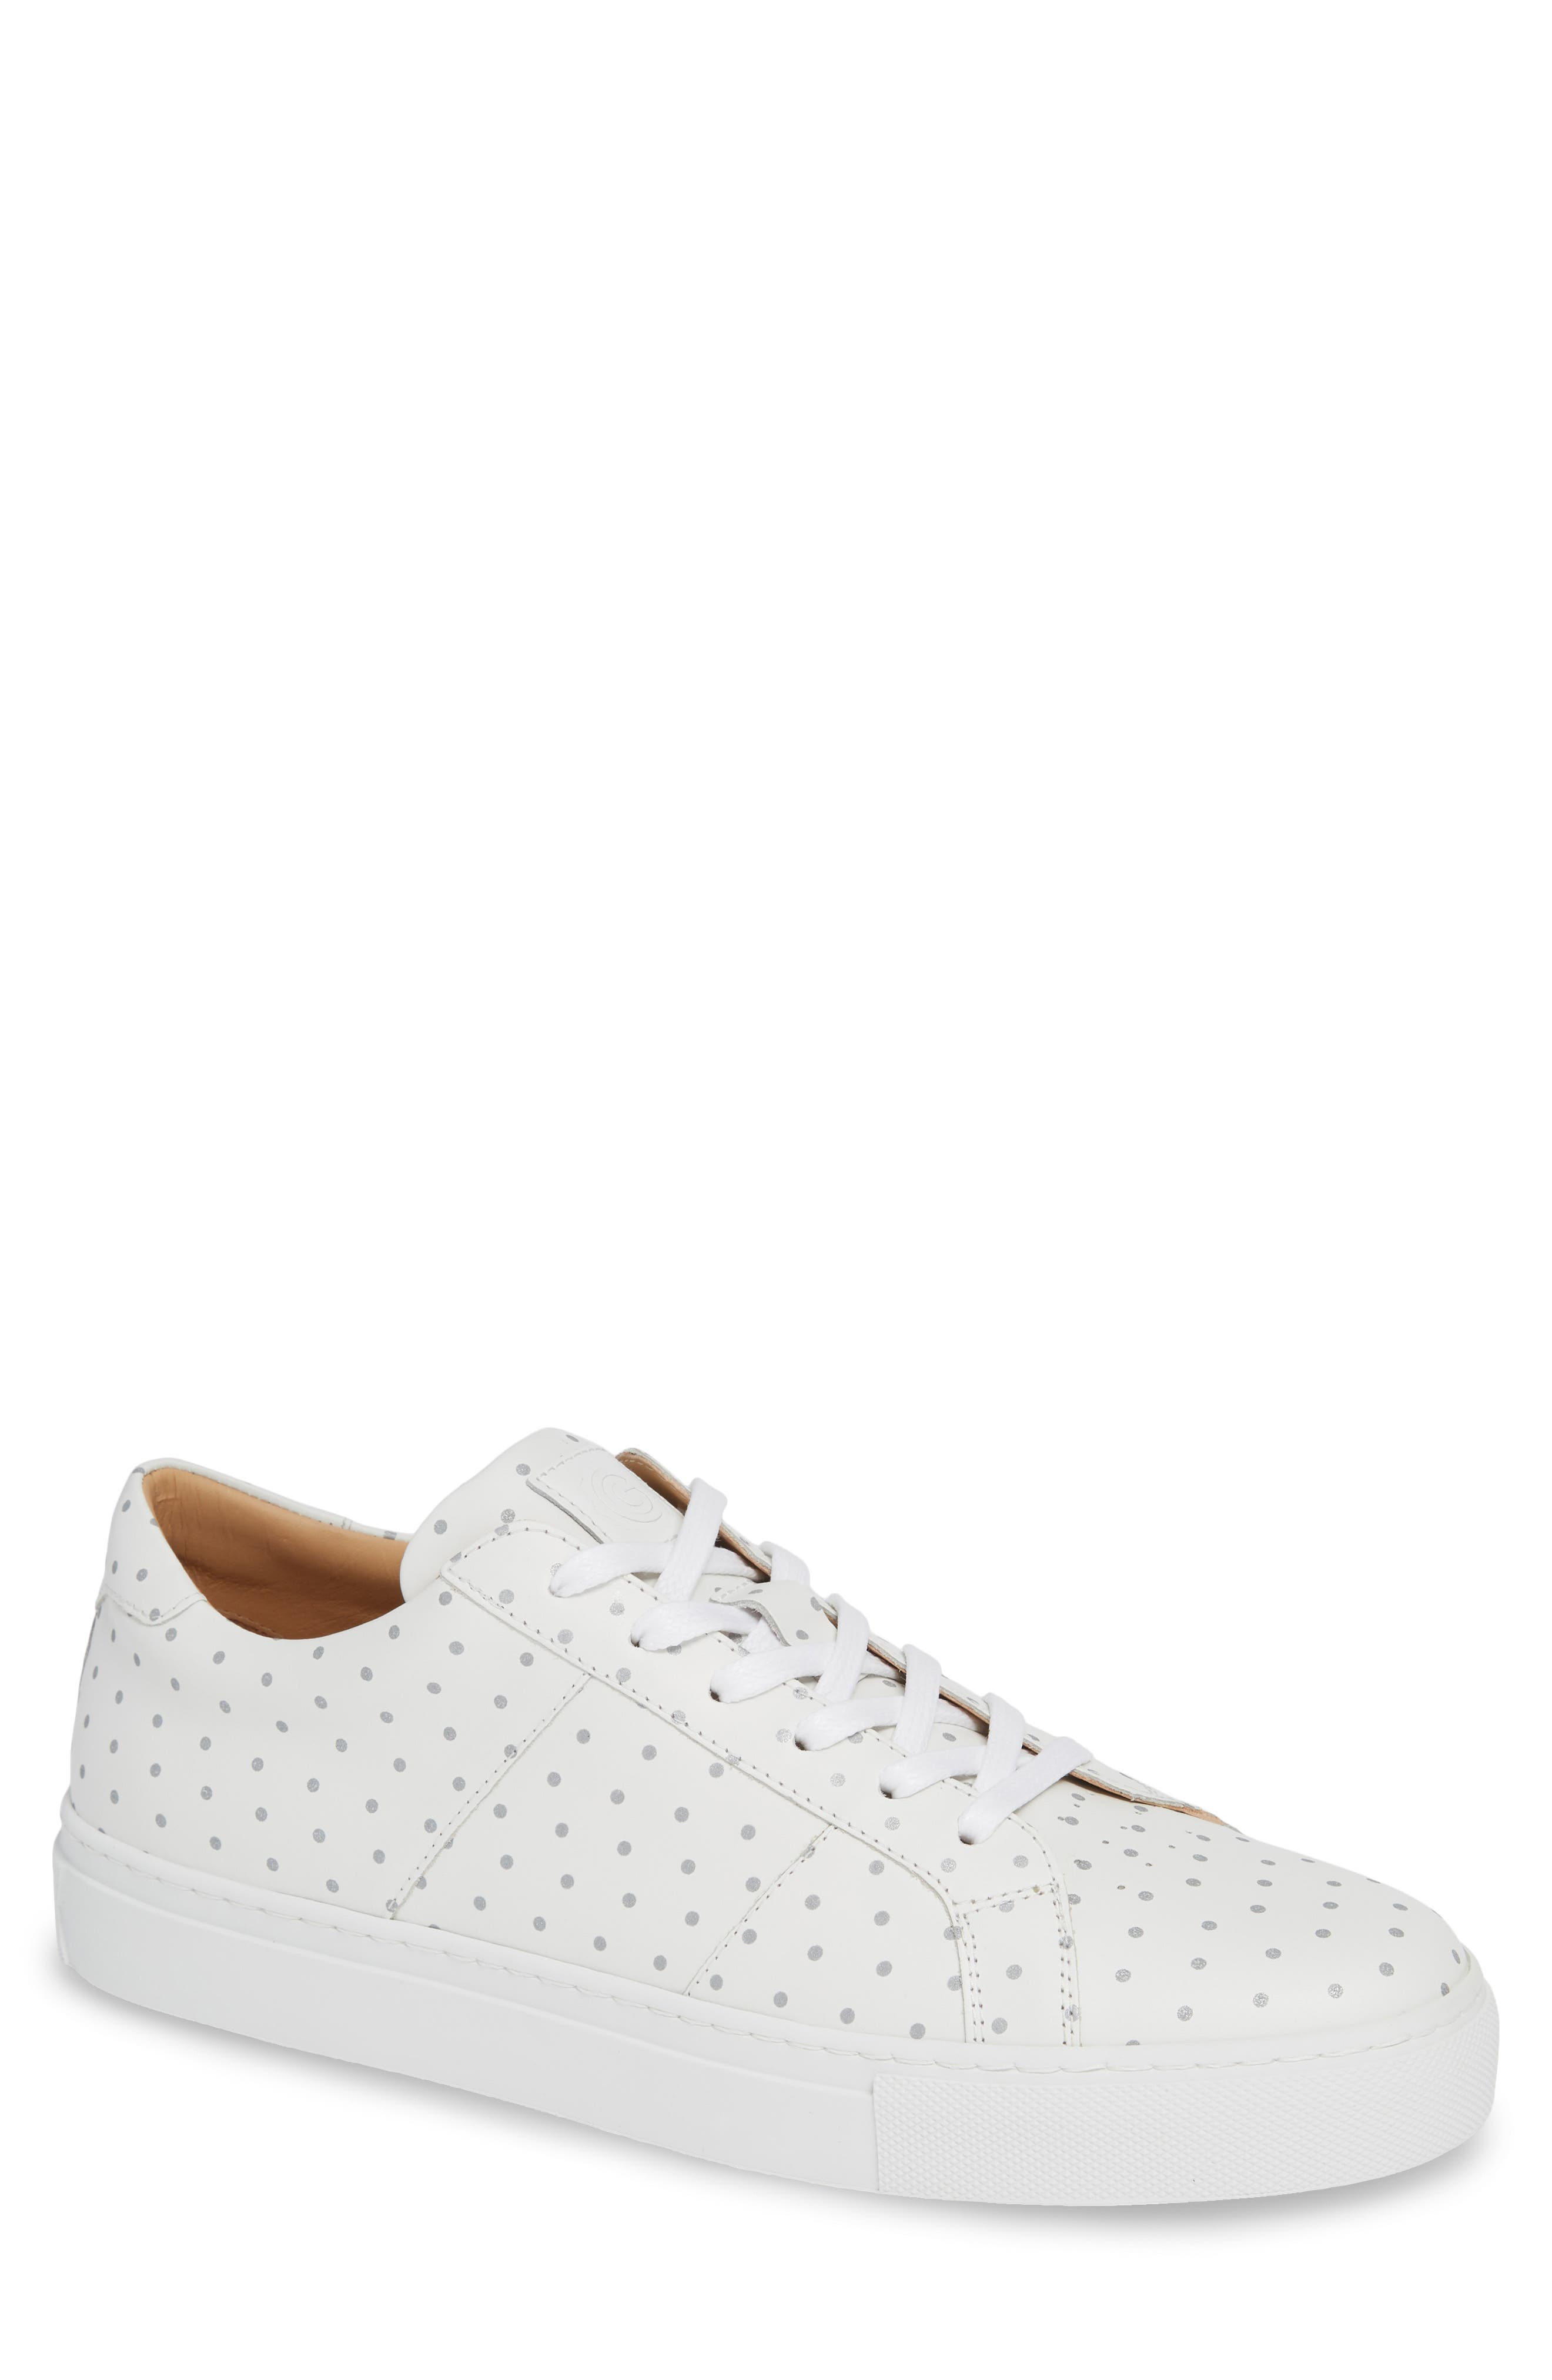 Nick Wooster x GREATS Royale Dots Low Top Sneaker,                             Main thumbnail 1, color,                             WHITE W/ 3M DOTS